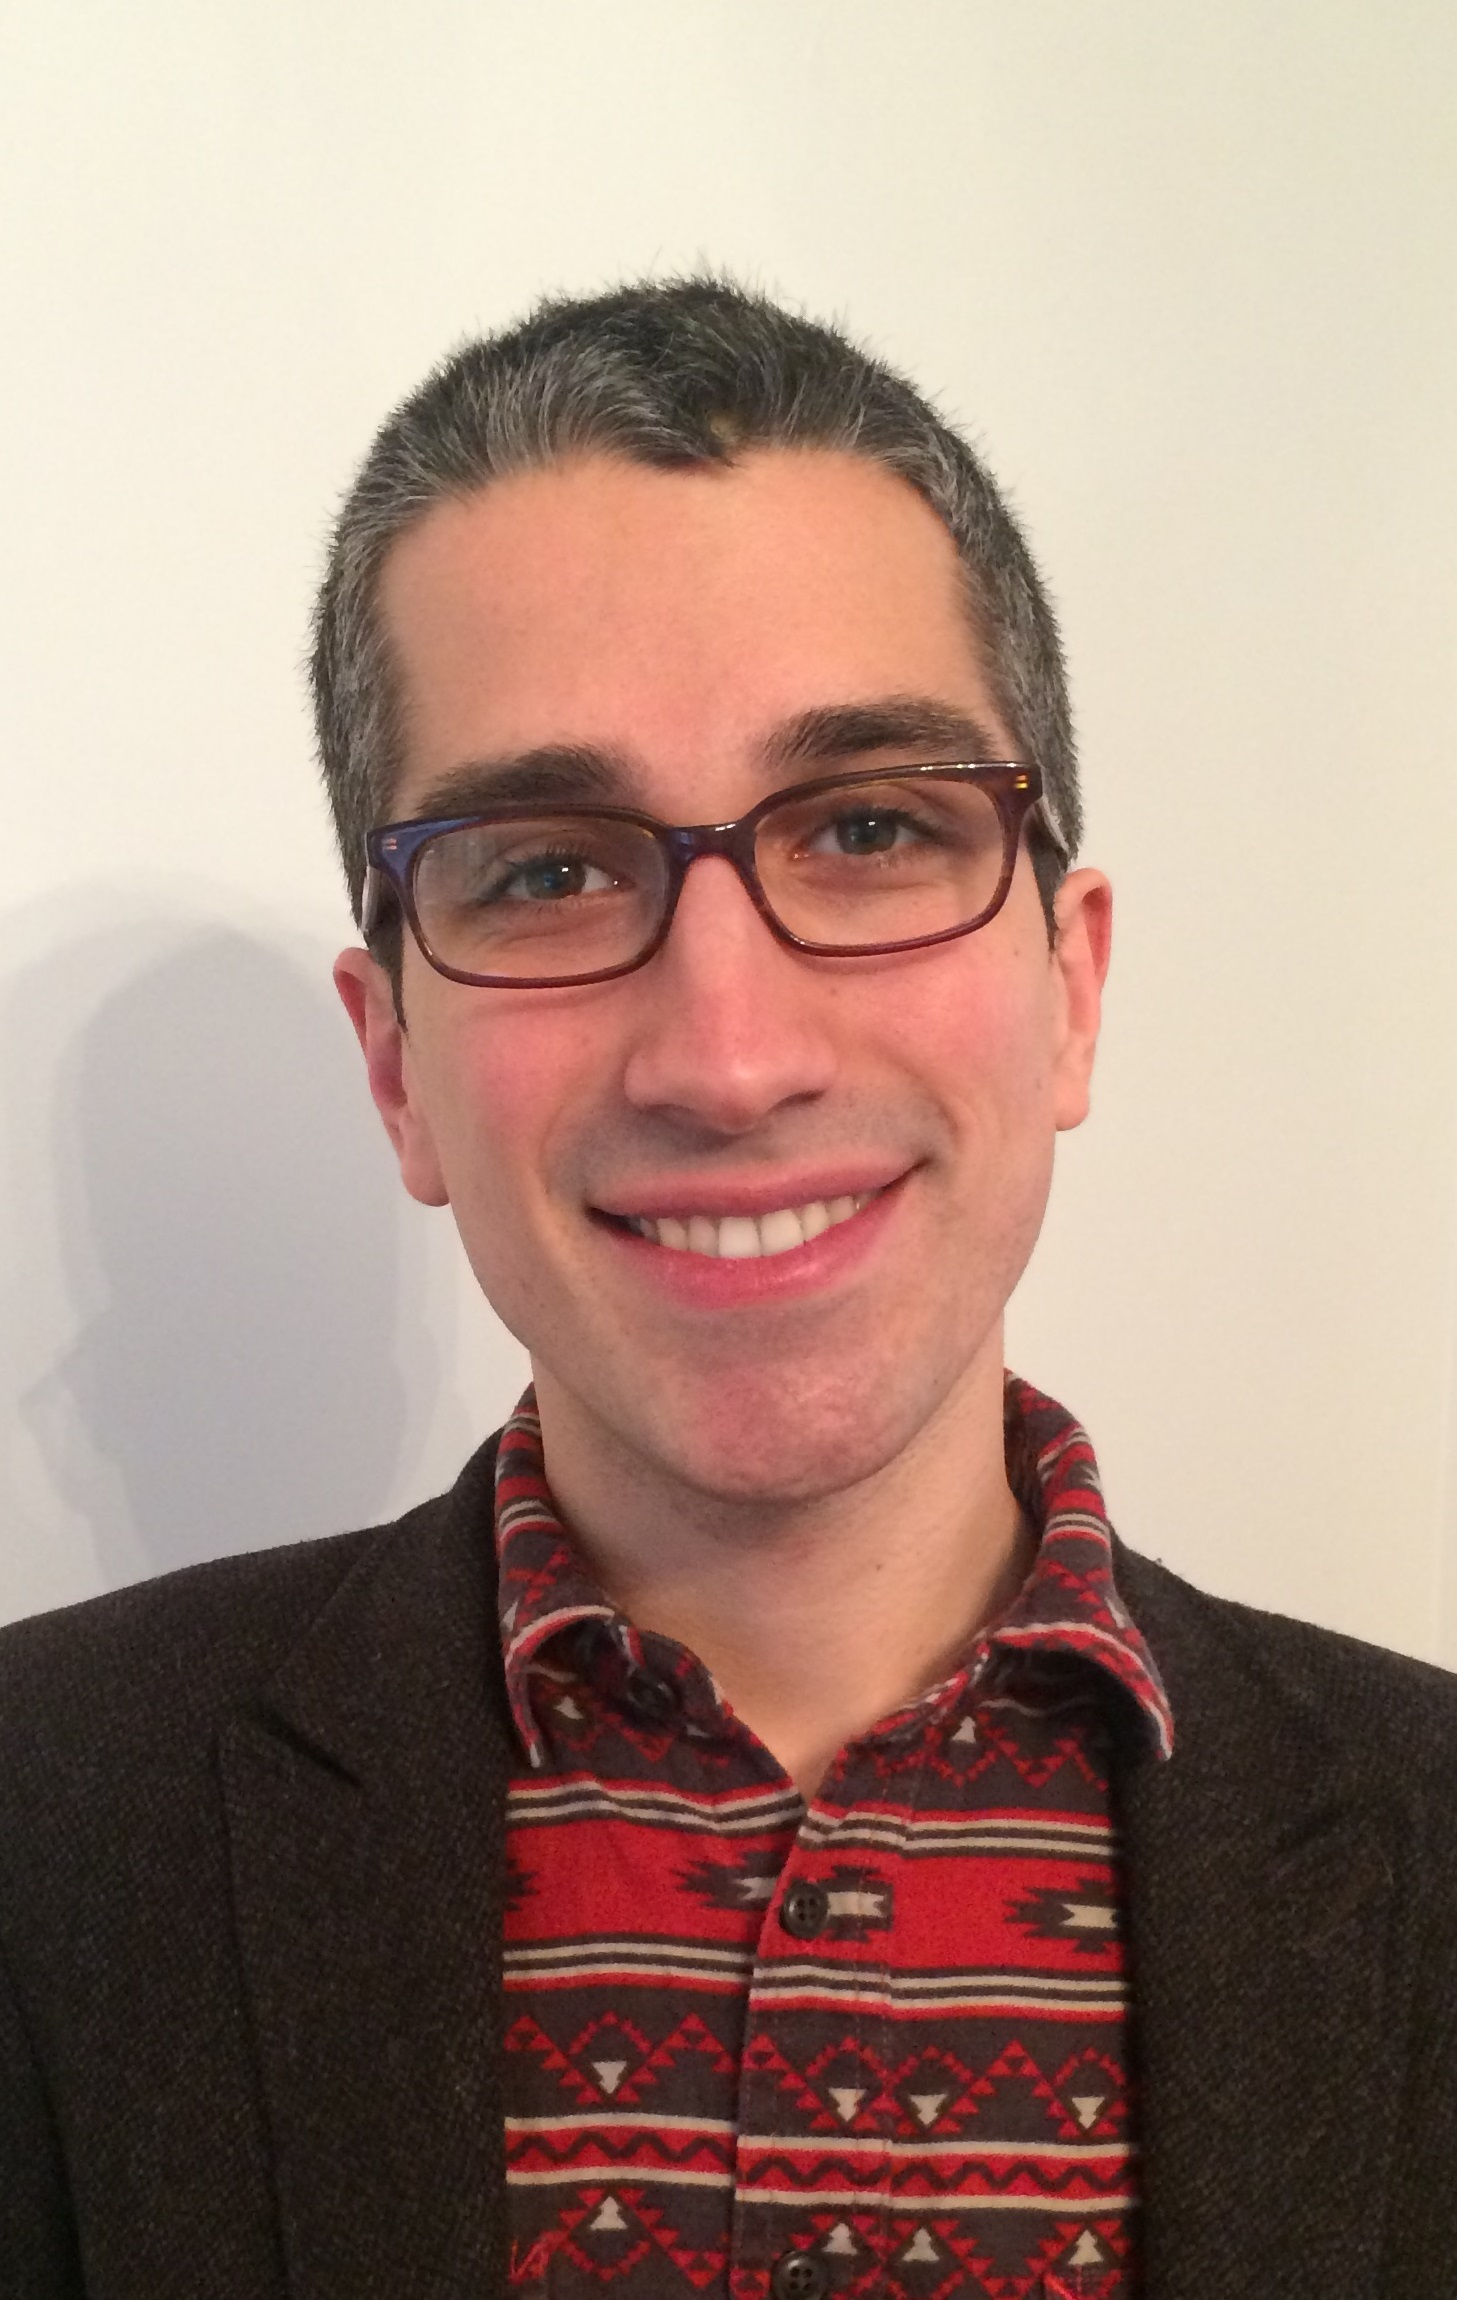 IMPACT Leadership Development Program        Fellows University of Wisconsin Milwaukee Danny Snelson is a writer  editor and archivist working on a dissertation entitled  quot Variable Format  Media Poetics and the Little Database